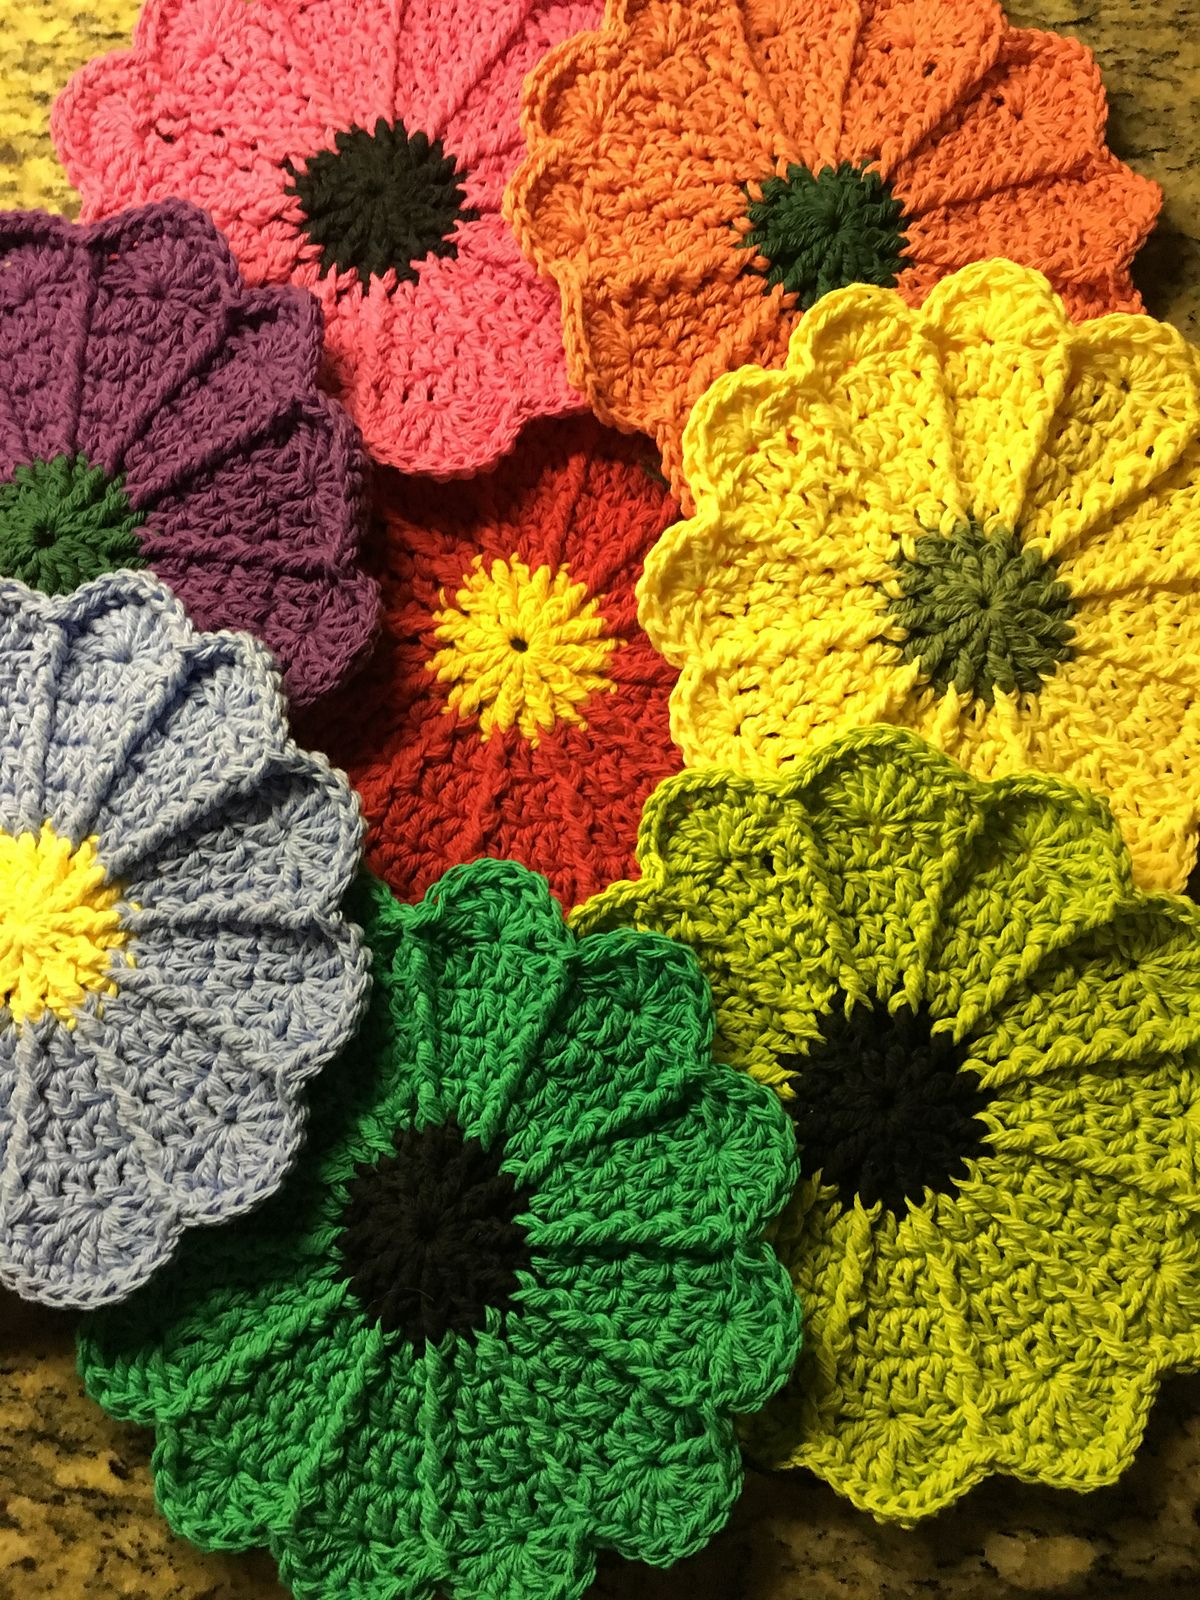 Scalloped potholder by priscilla hewitt free crochet pattern scalloped potholder by priscilla hewitt free crochet pattern ravelry bankloansurffo Images